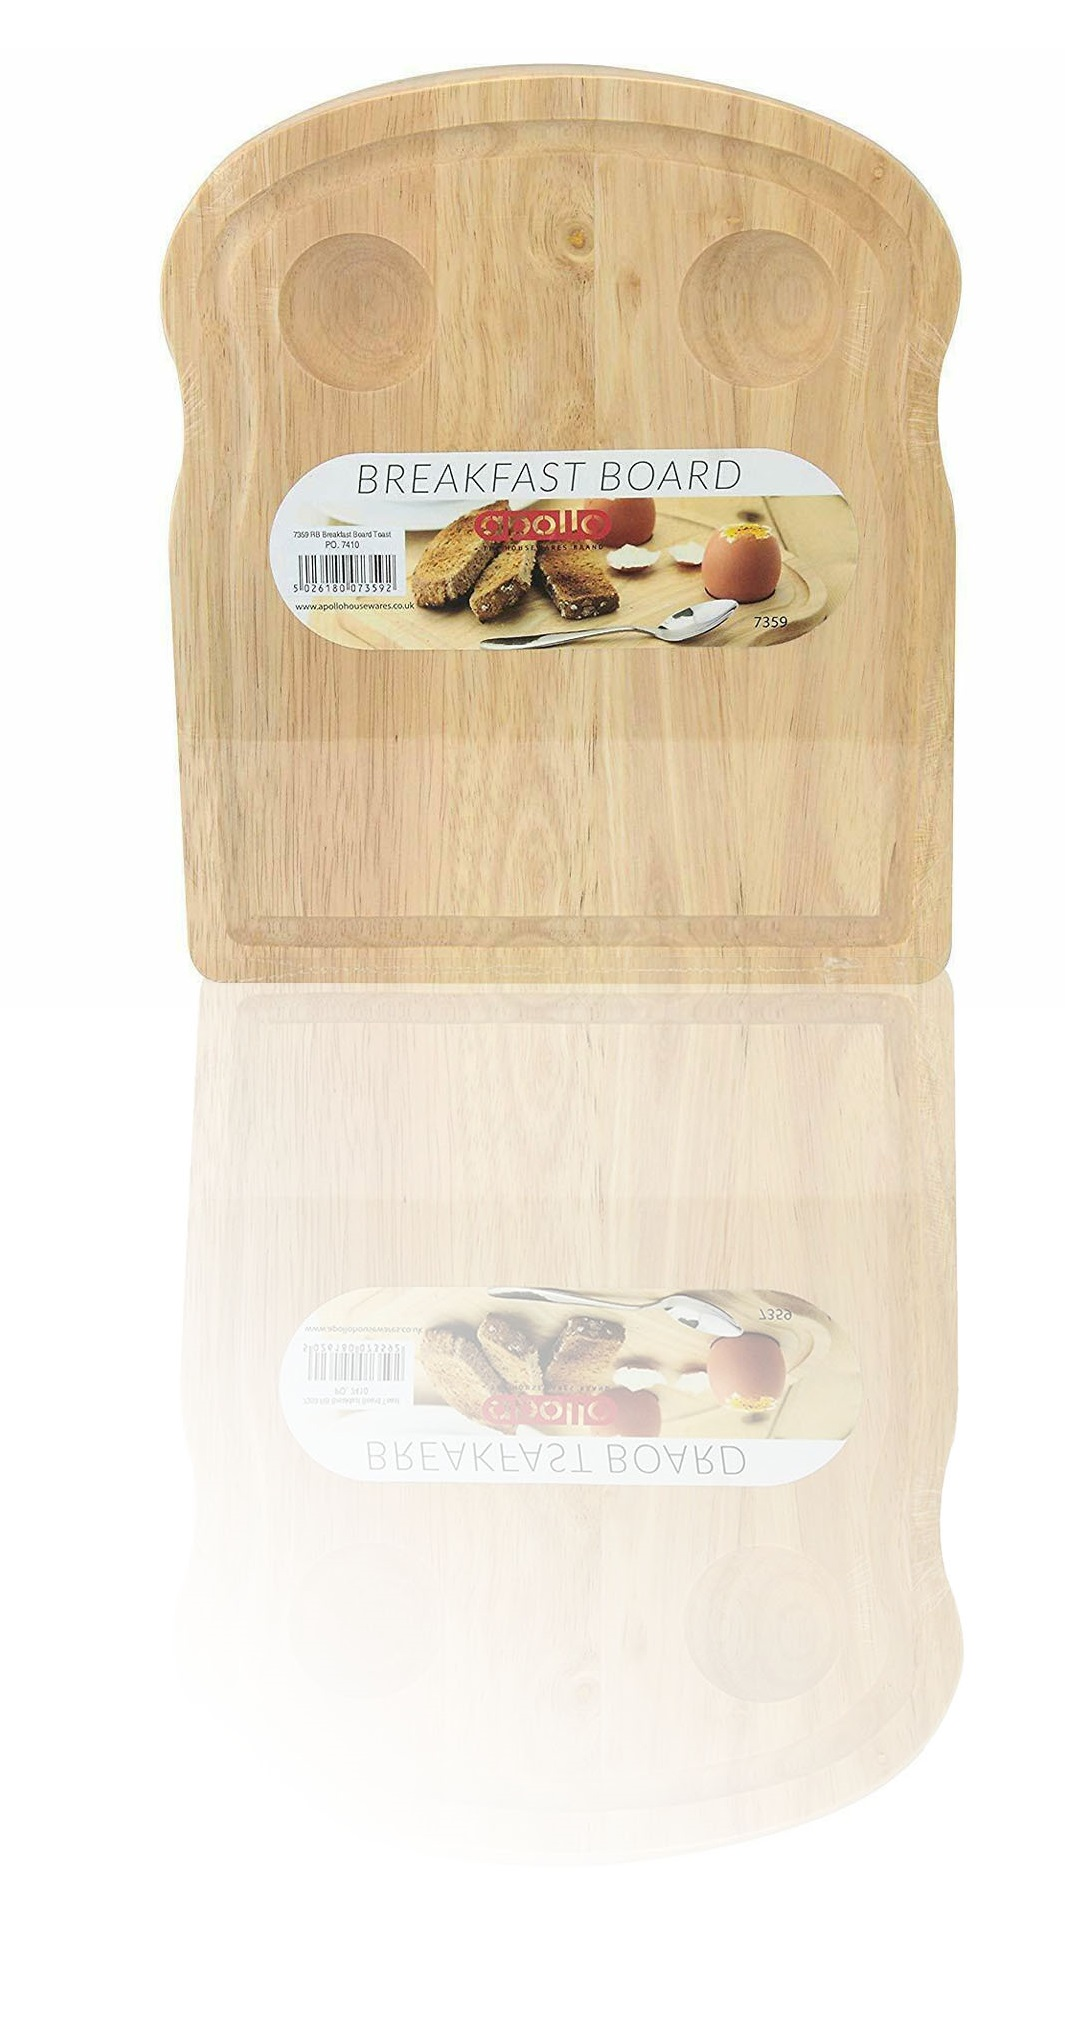 Rubberwood Breakfast Board Toast Shaped Serving Tray with Egg Holders